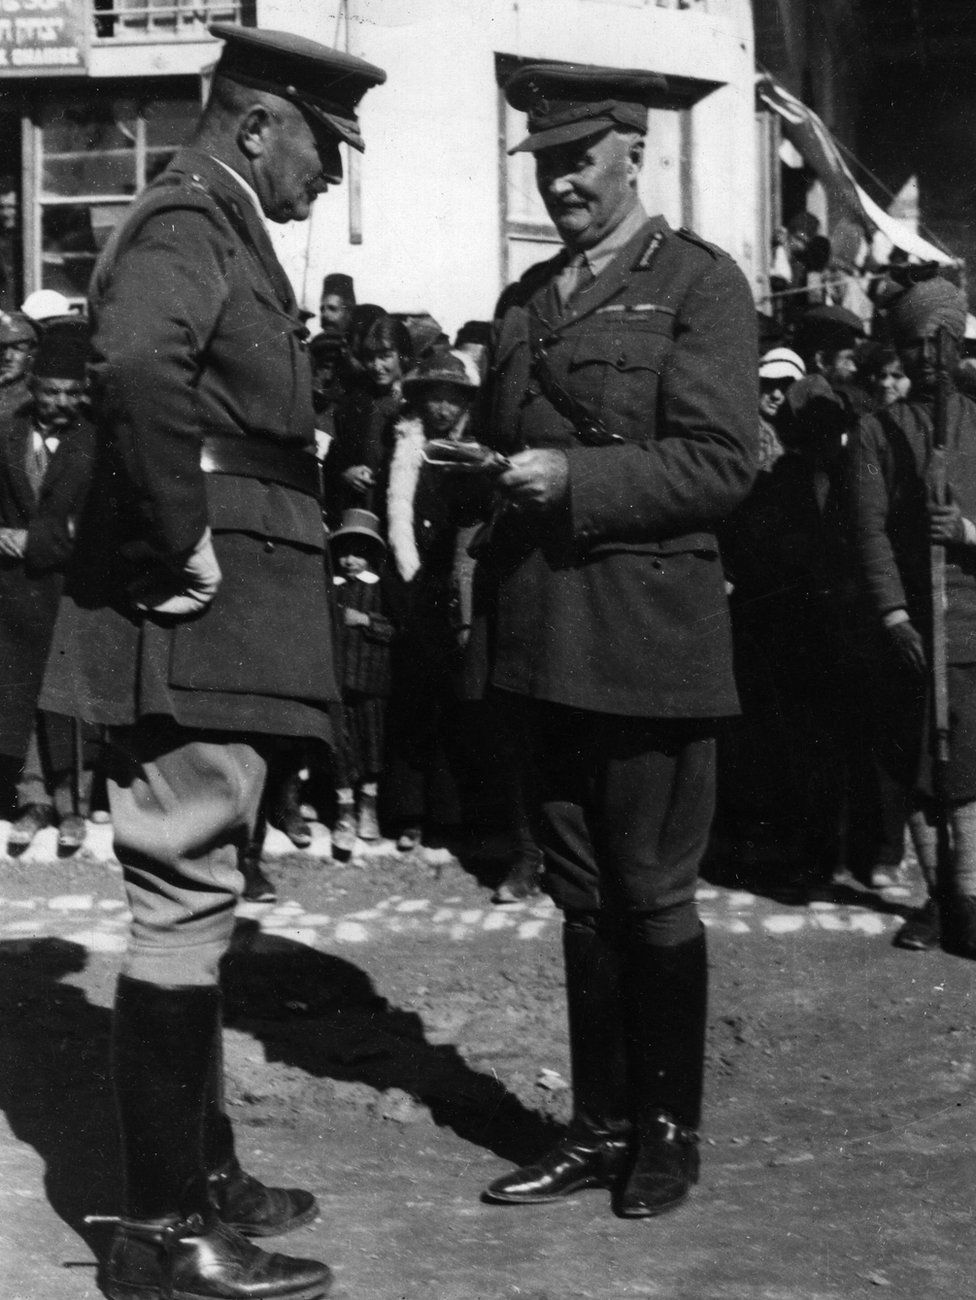 17th November 1917: General Edmund Henry Hynman Allenby (1861 - 1936) in conversation with an Army officer in Palestine.